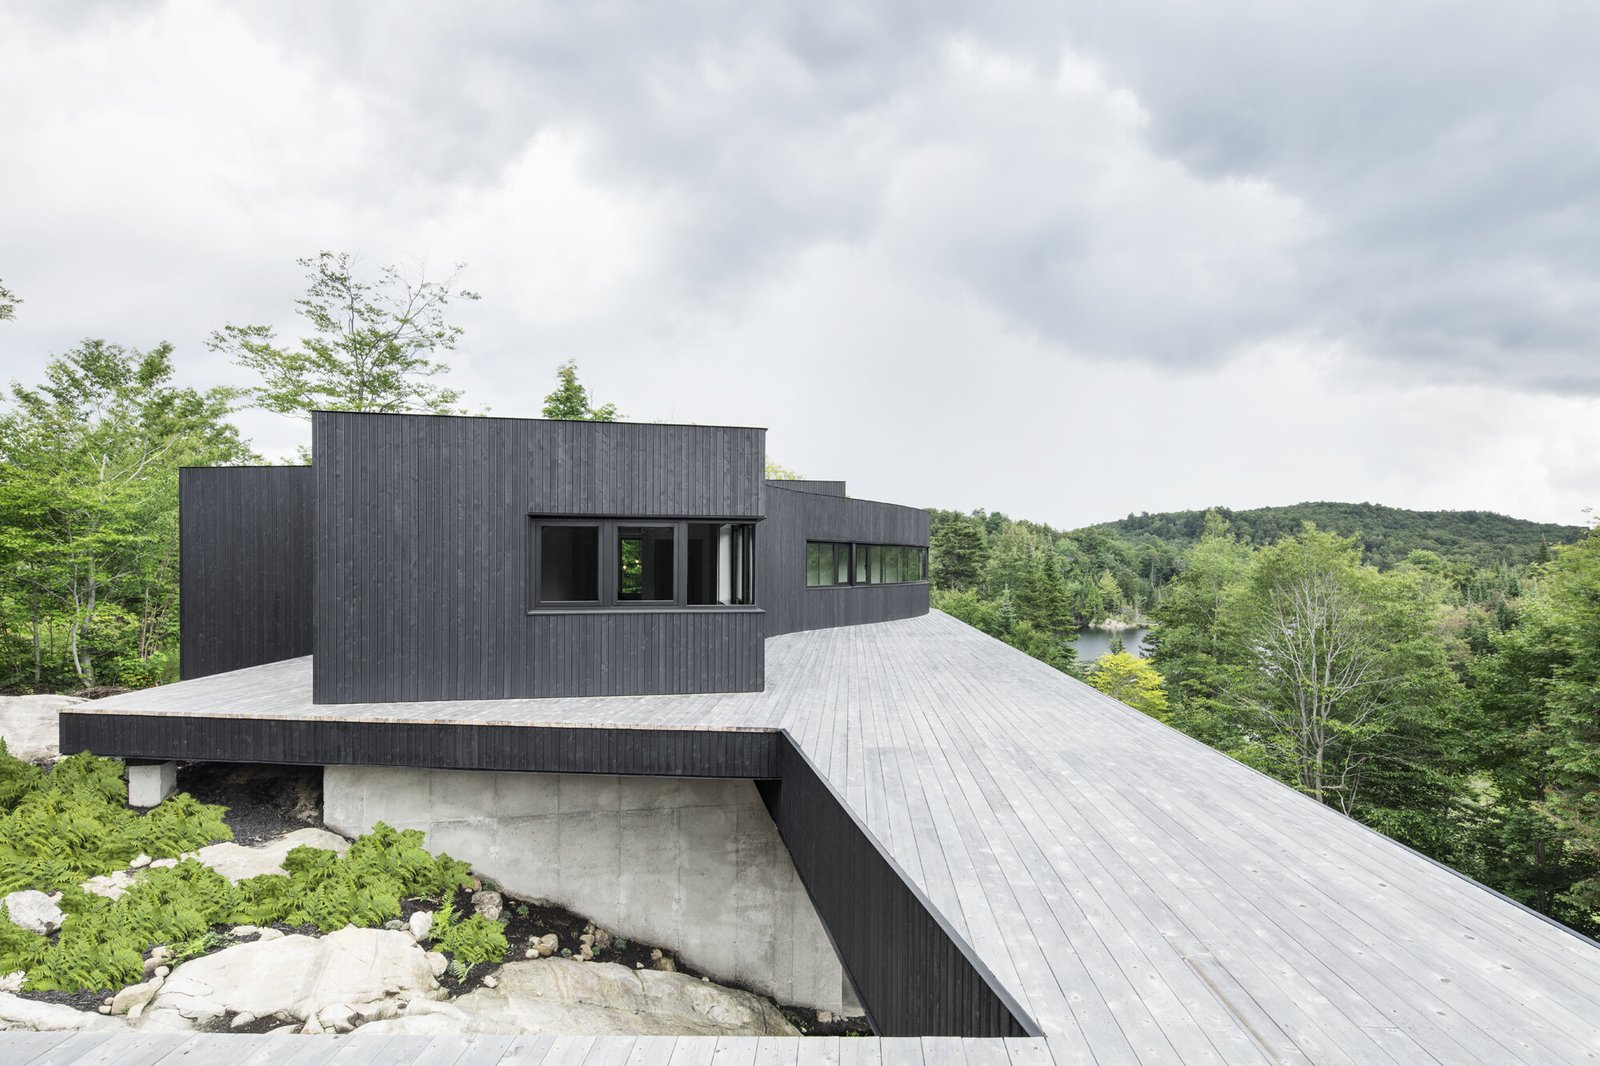 Exterior, Wood Siding Material, and House Building Type  Photos from La Héronnière